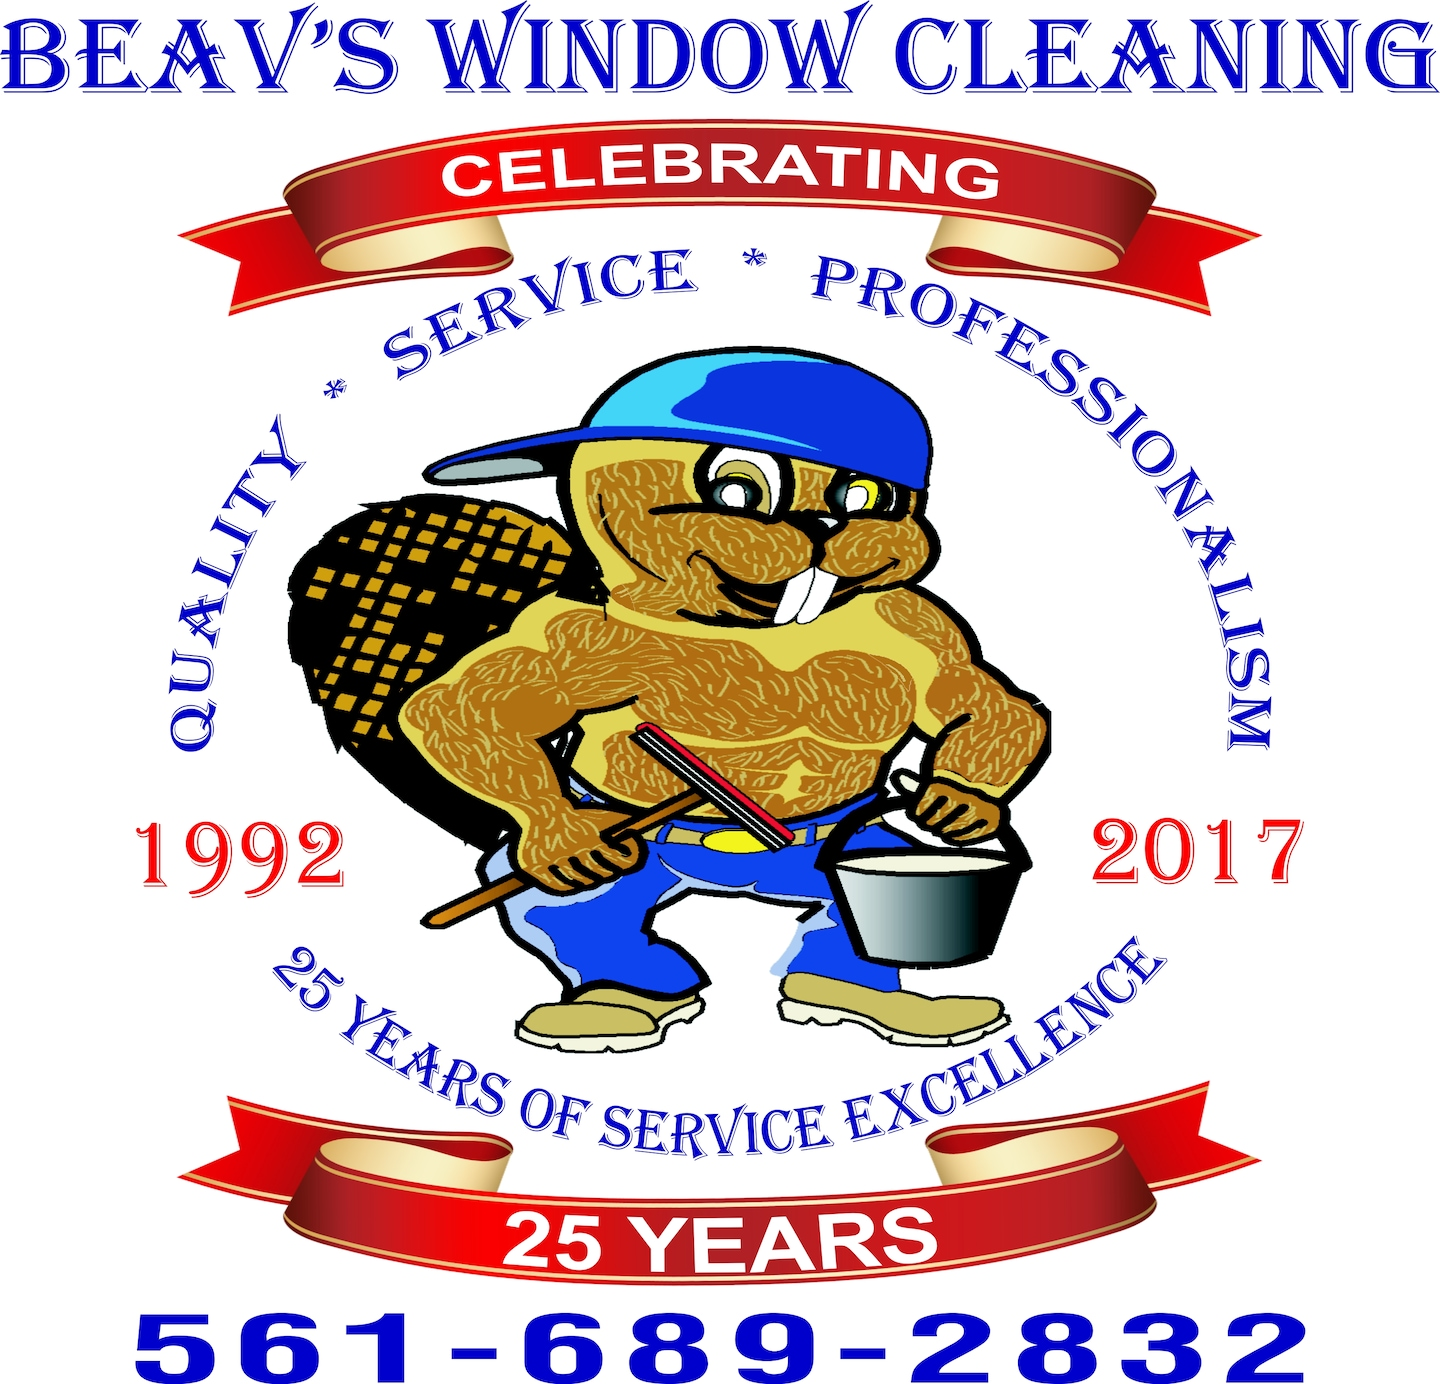 Beav's Window Cleaning